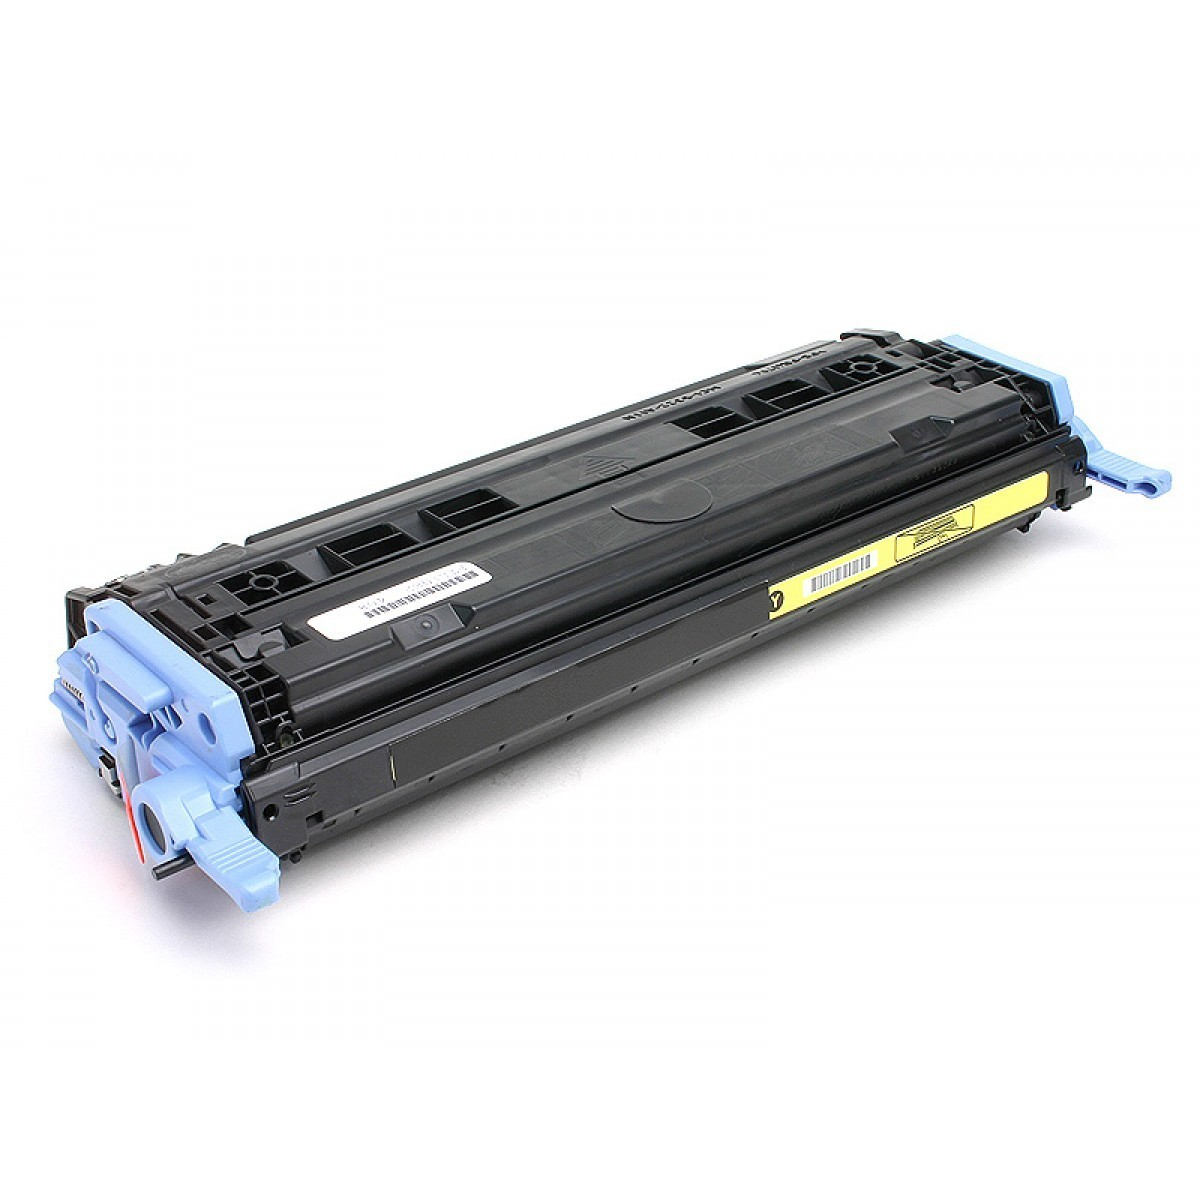 TONER HP 2600 YELLOW (1600/2600)